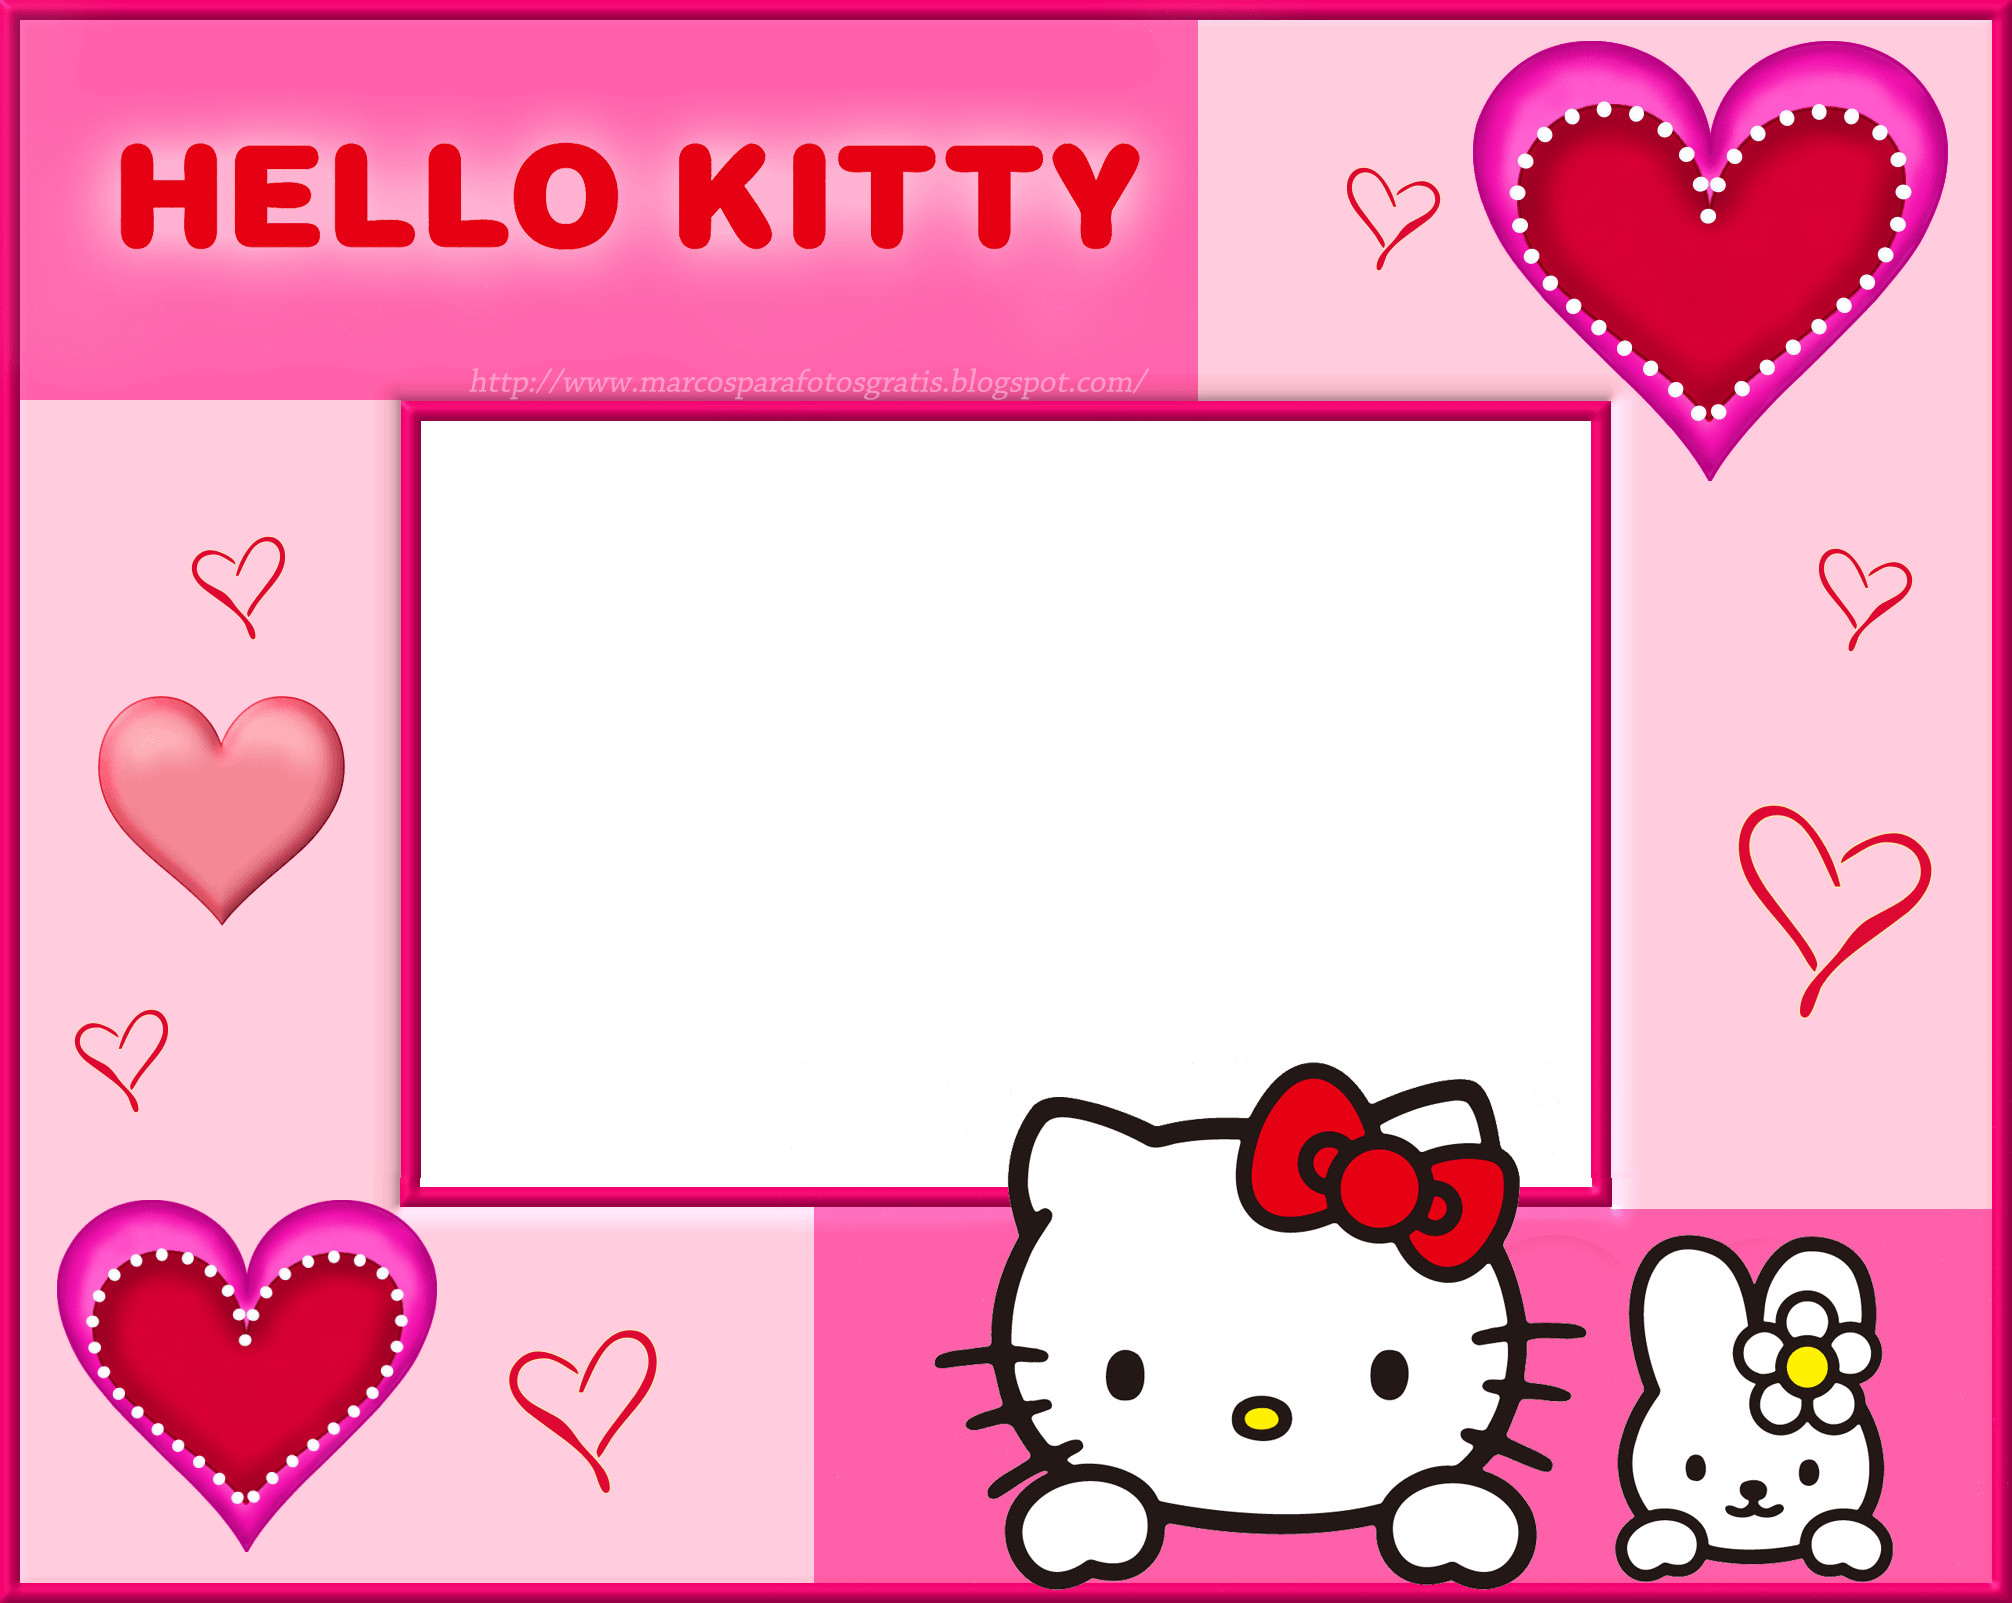 2012x1603 Hello Kitty Wallpapers HD - Wallpaper Cave